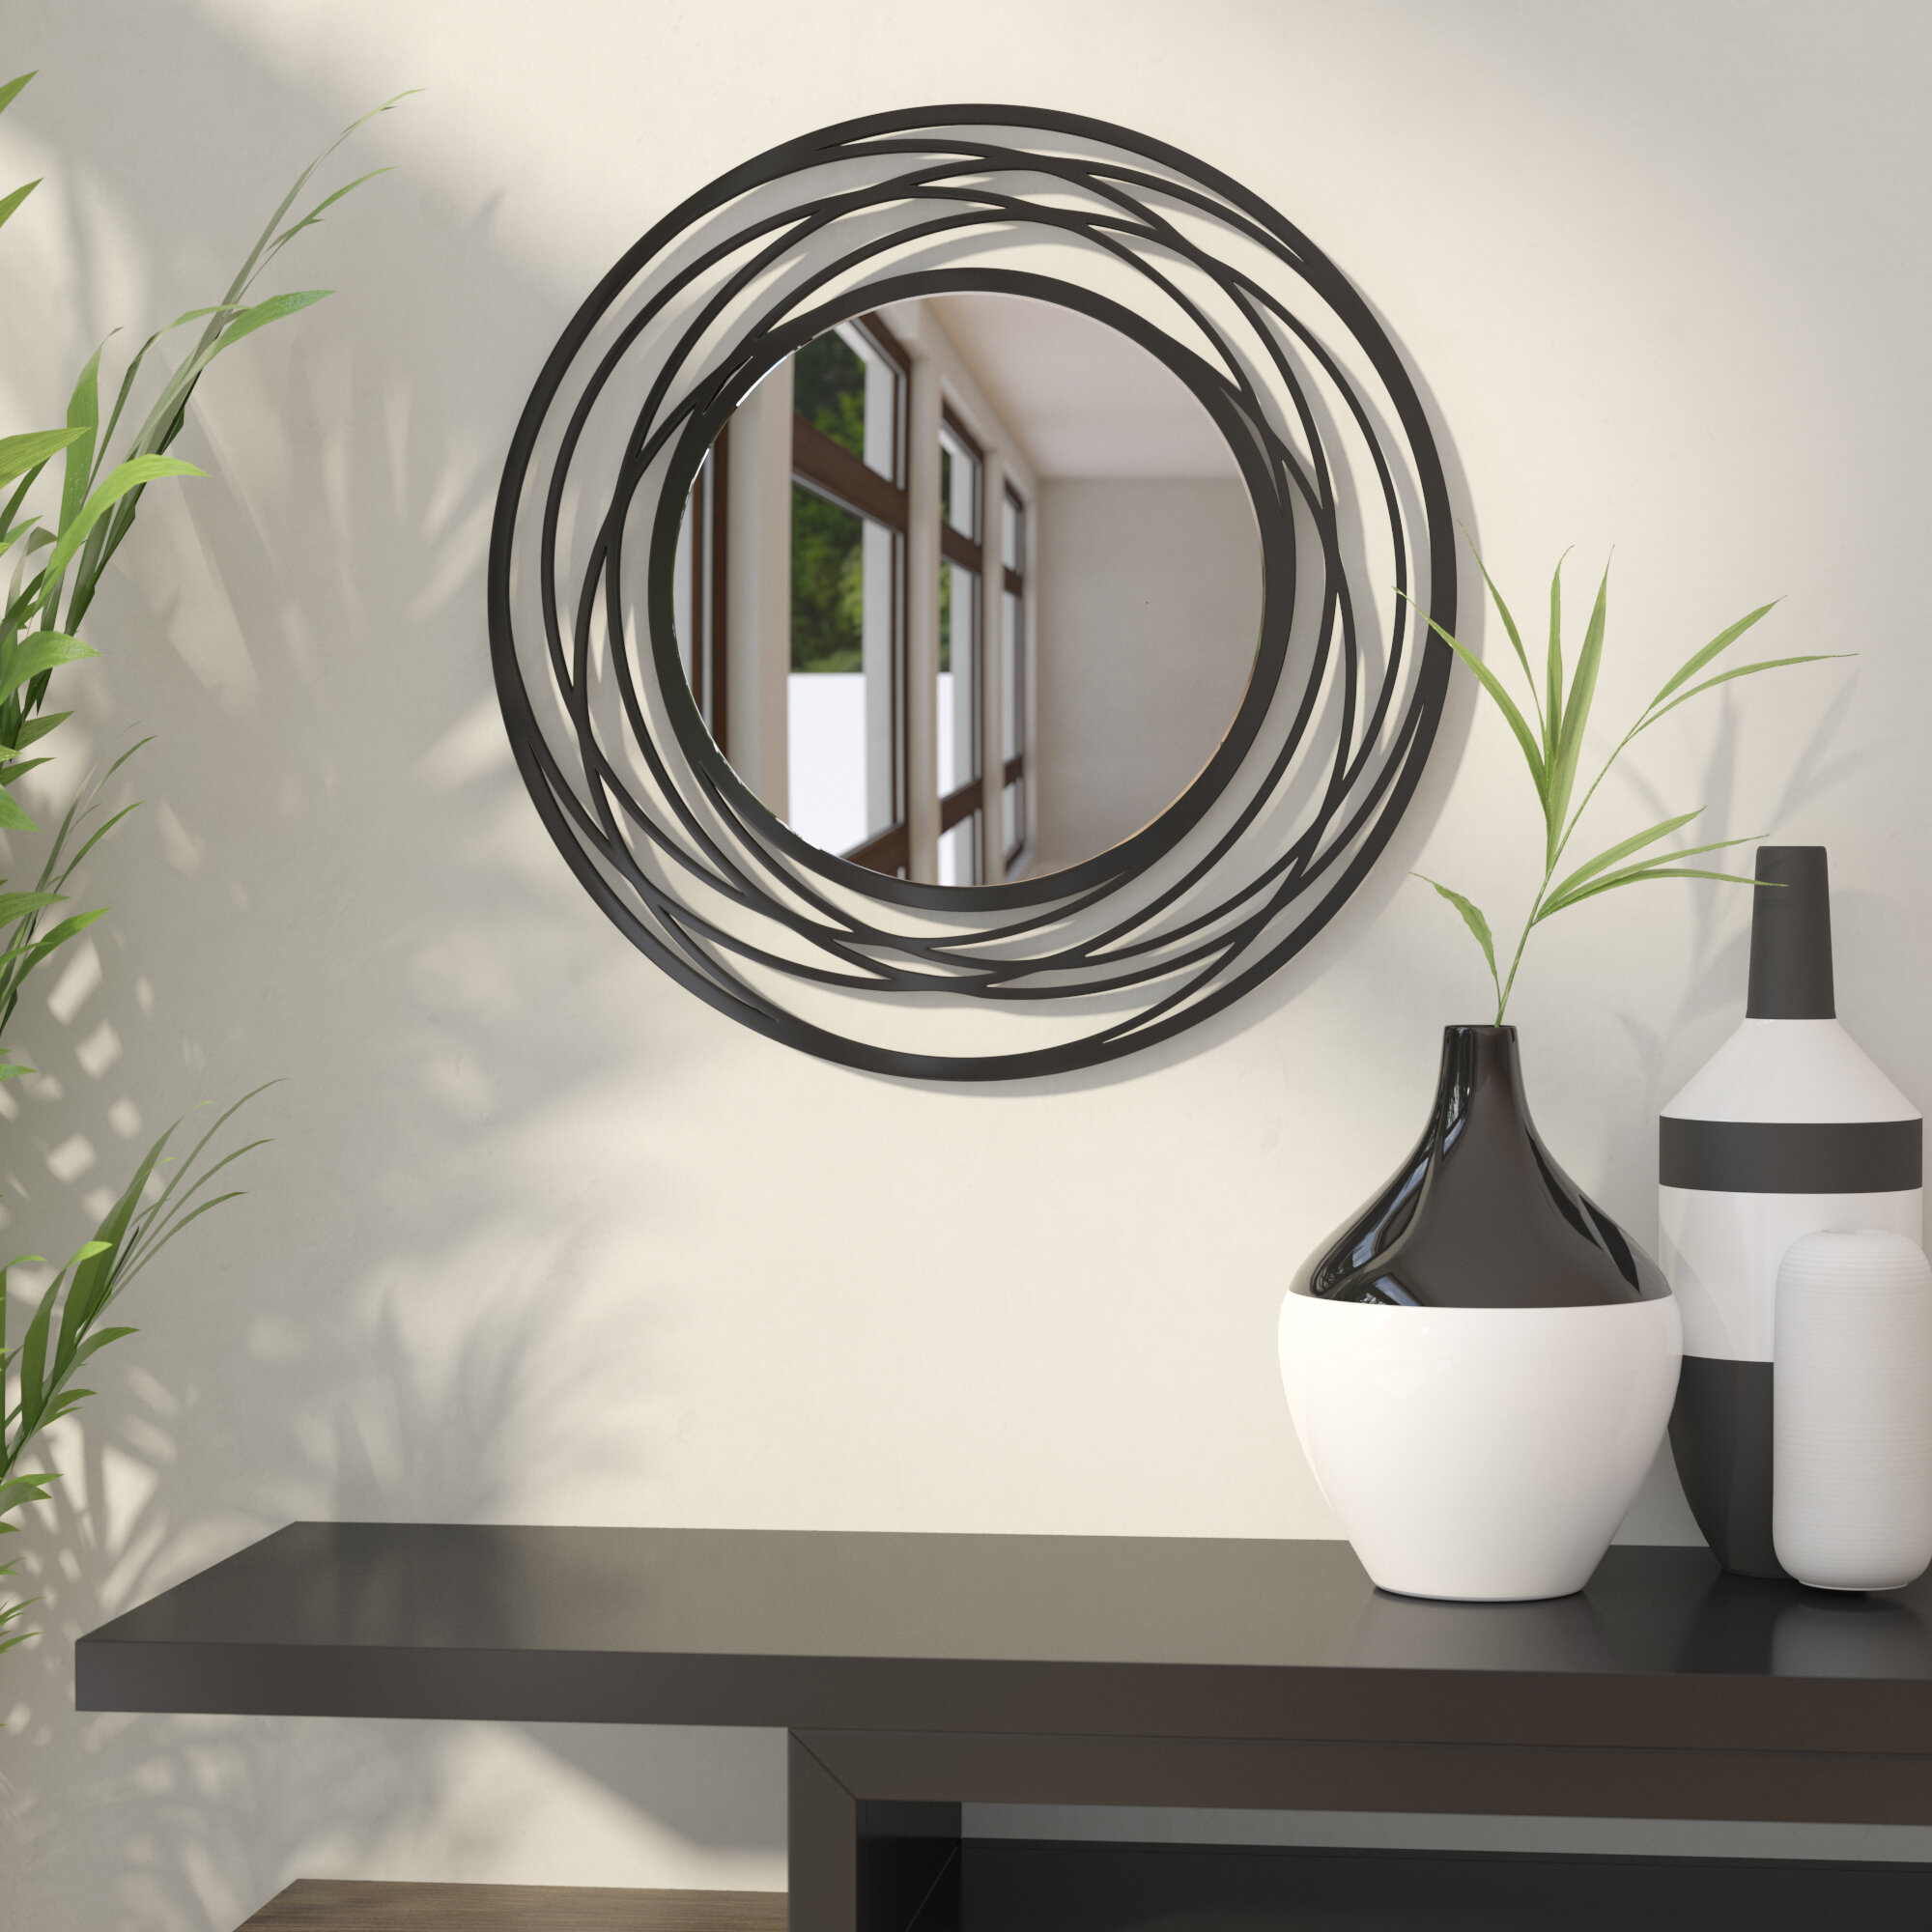 Bathroom Wall Mirror Round Explosion Proof Vanity Mirror Bedroom Fireplace Mirror With Frame Mimbarschool Com Ng